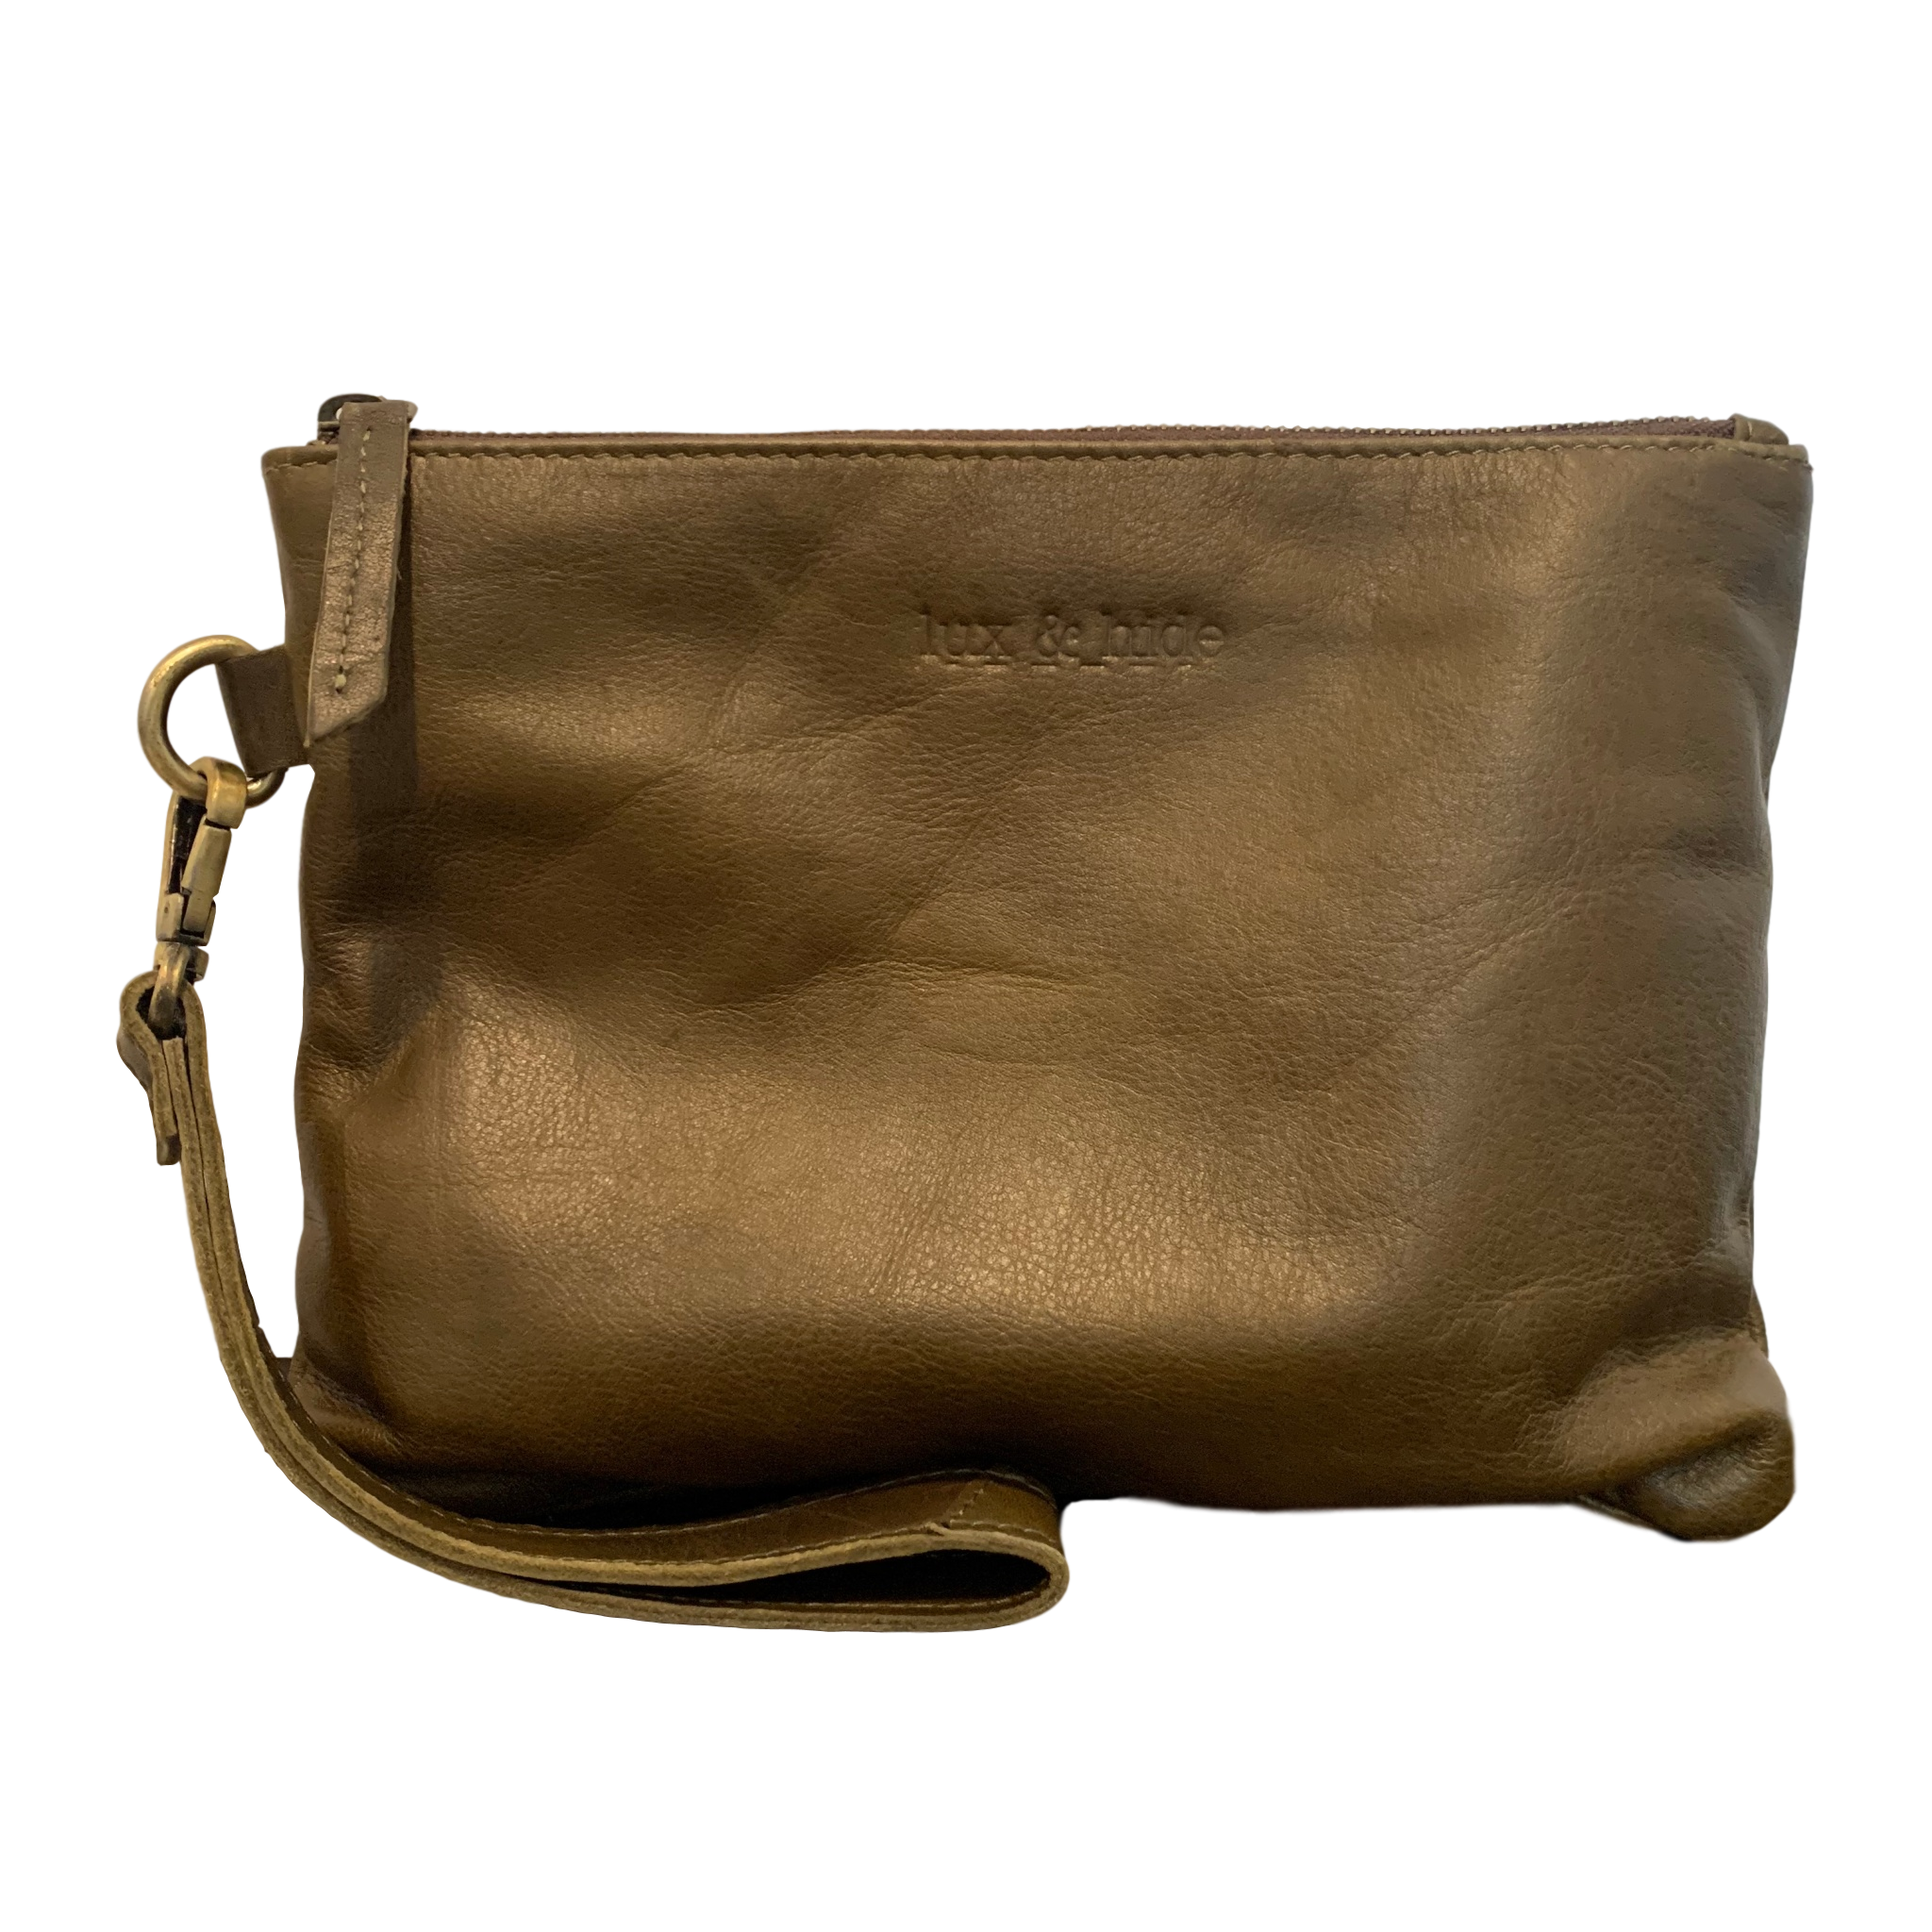 LEATHER CLUTCH - OLIVE GREEN - Lux & Hide